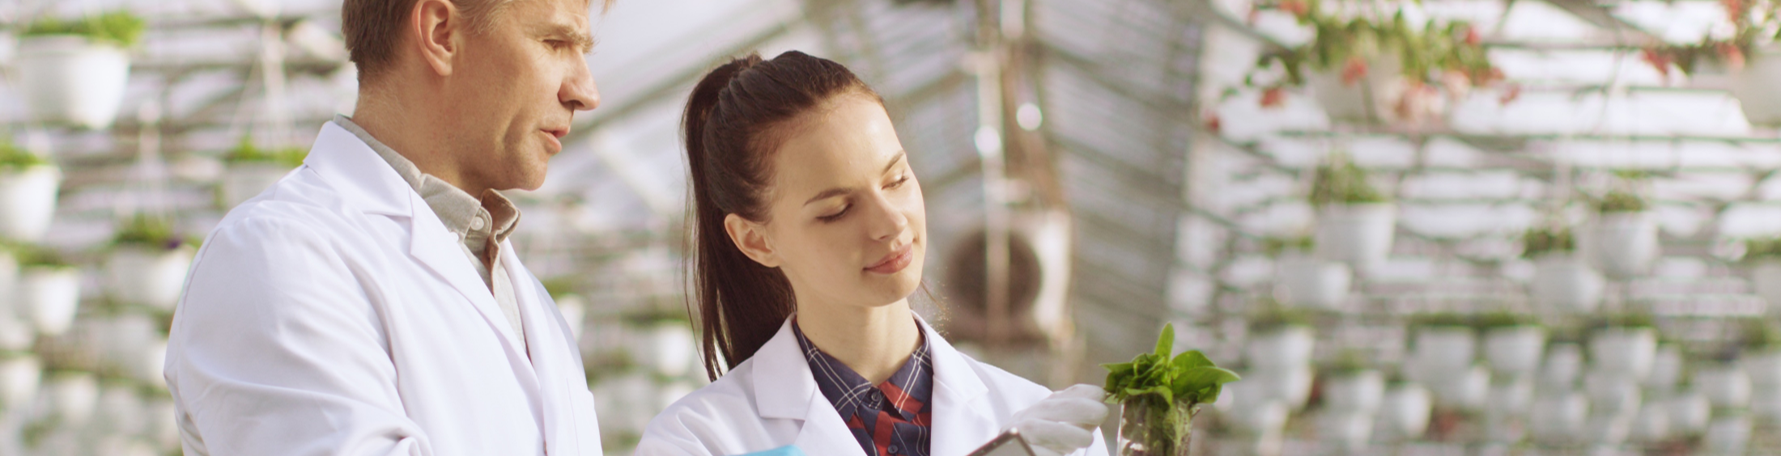 Two people in lab coats examining a plant